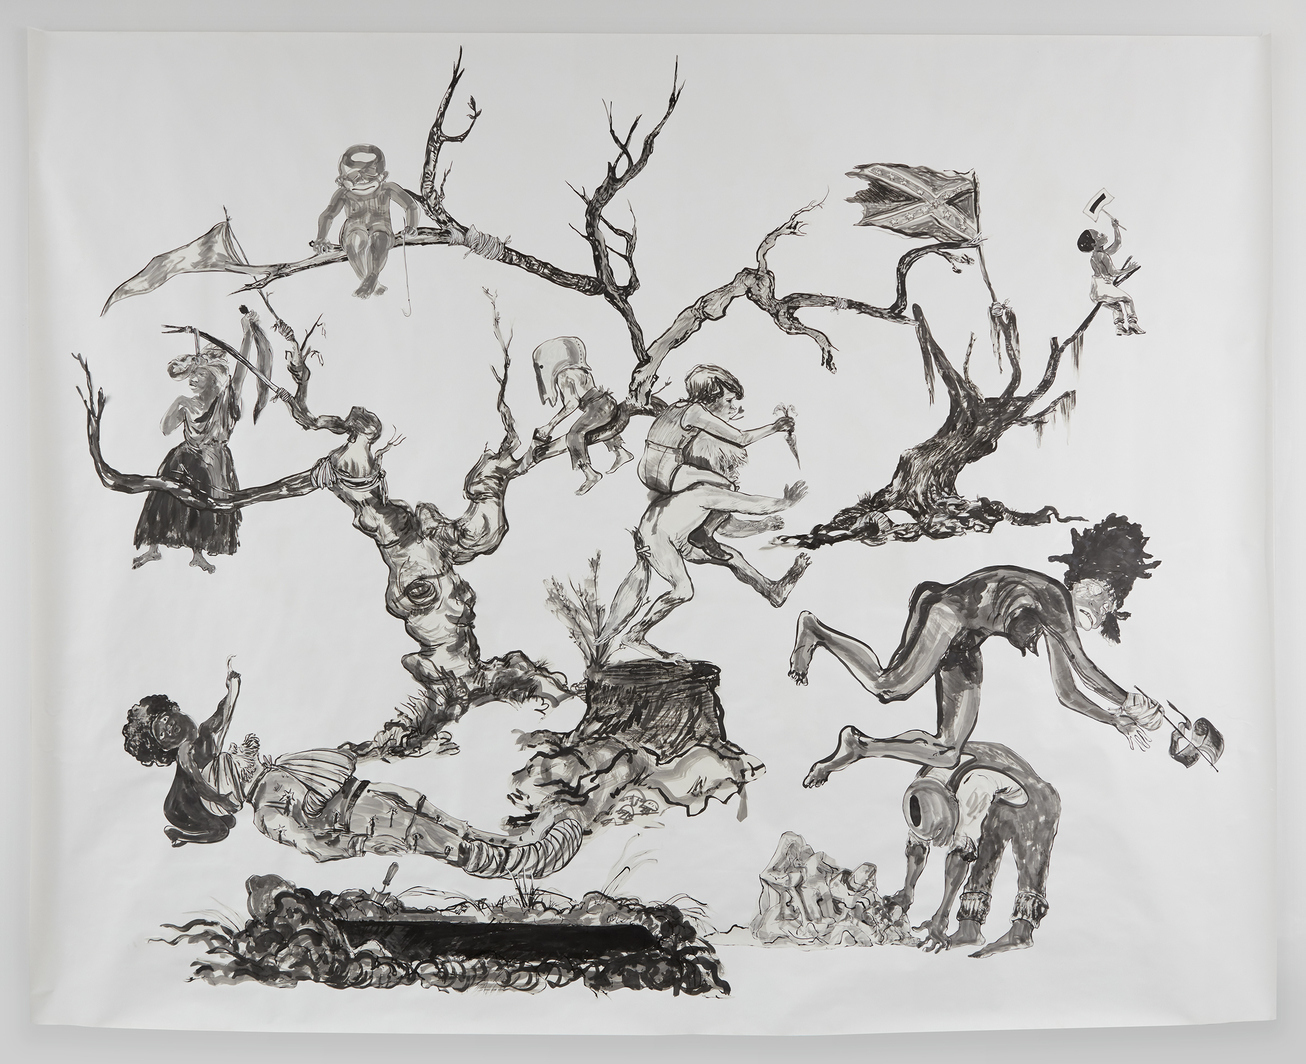 harvard art museums acquire large scale drawing by kara walker from recent fall show at sikkema jenkins gallery